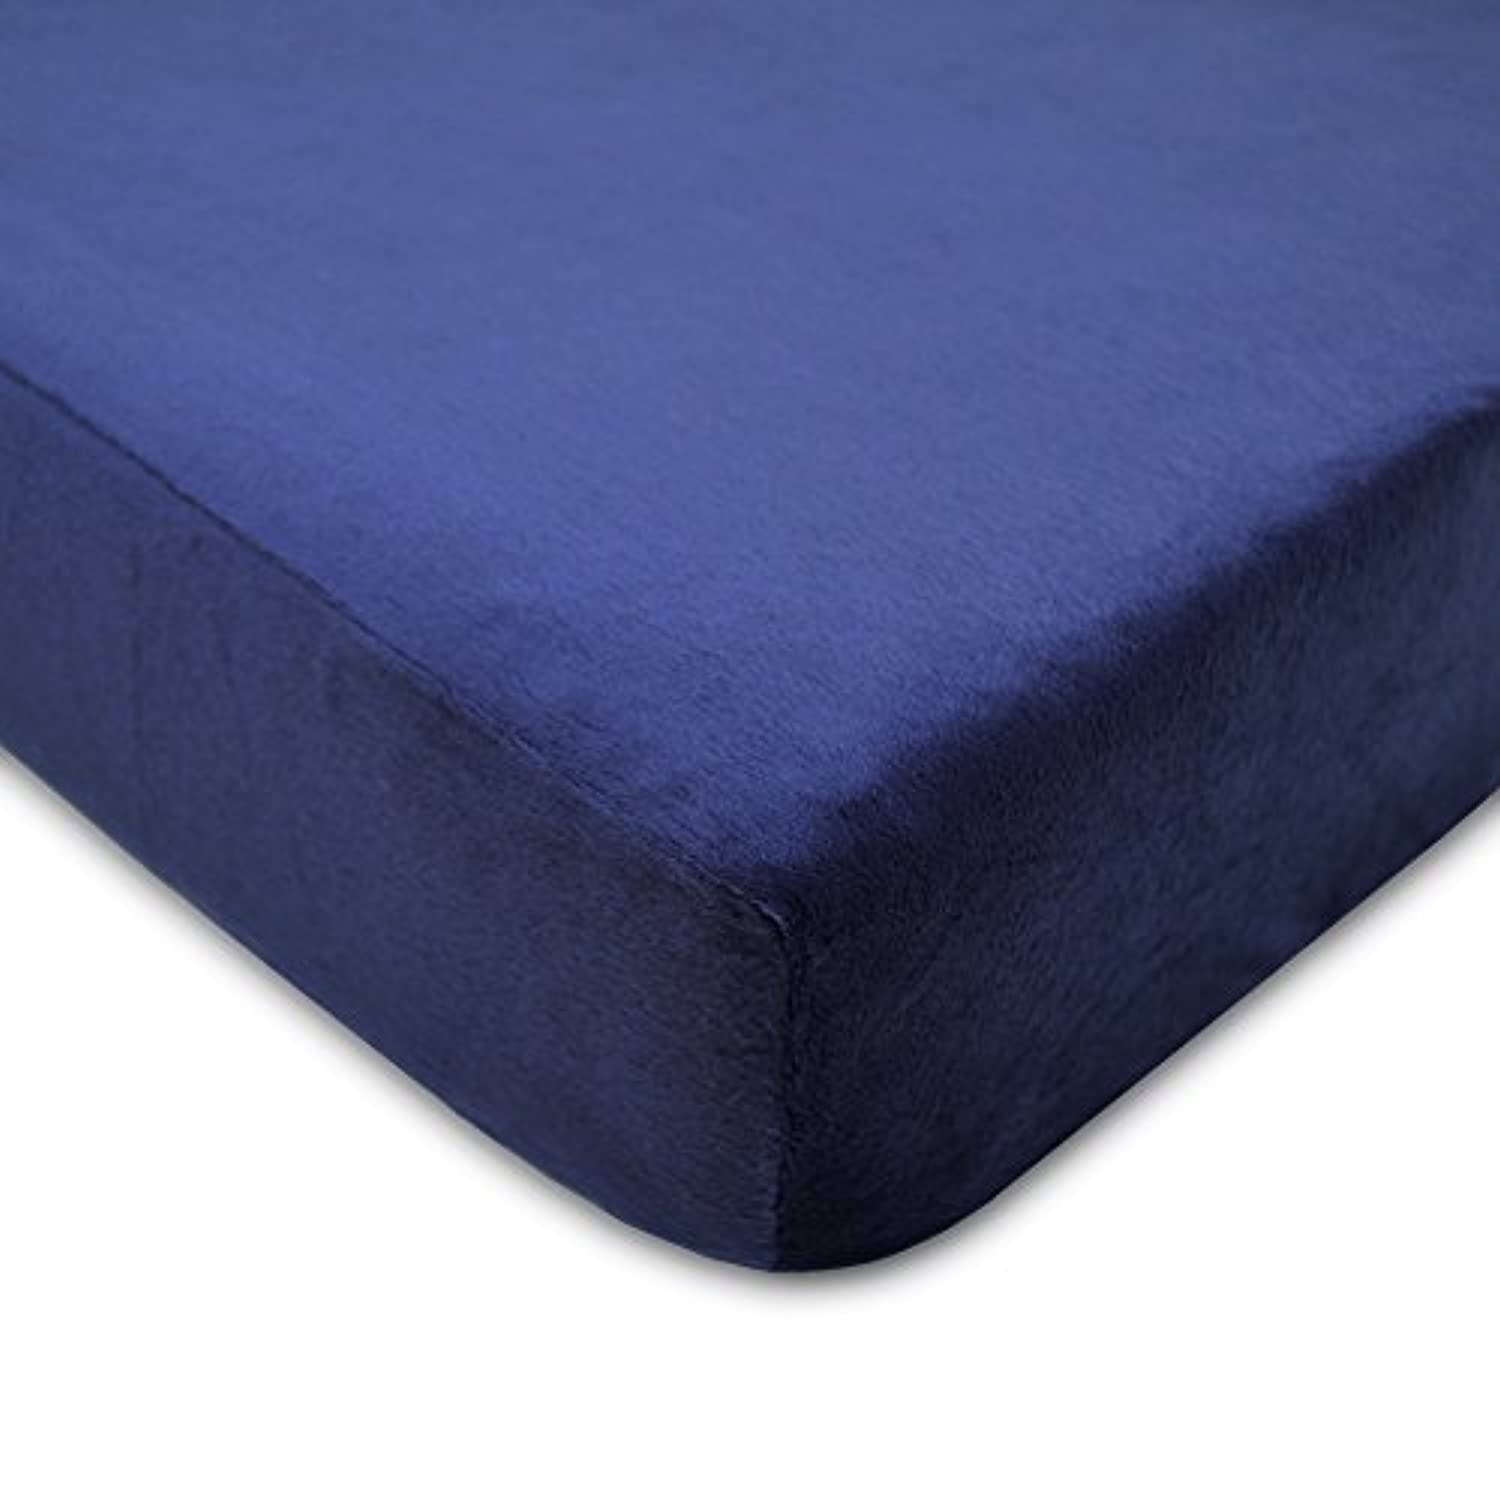 American Baby Company Heavenly Soft Chenille Fitted Crib Sheet, Navy by American Baby Company